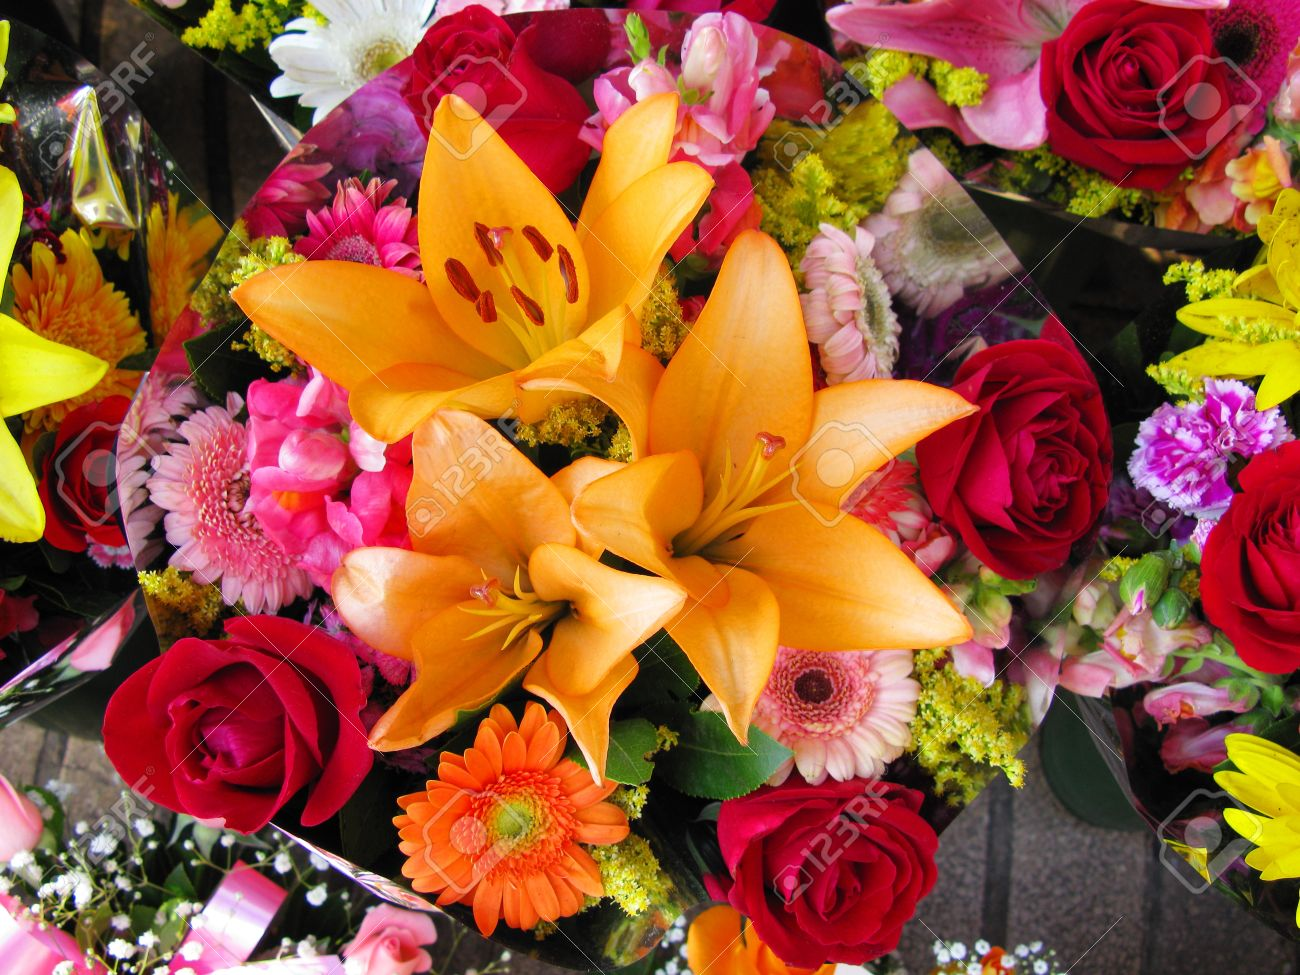 Vibrant And Colorful Bouquet Of Flowers Stock Photo, Picture And ...